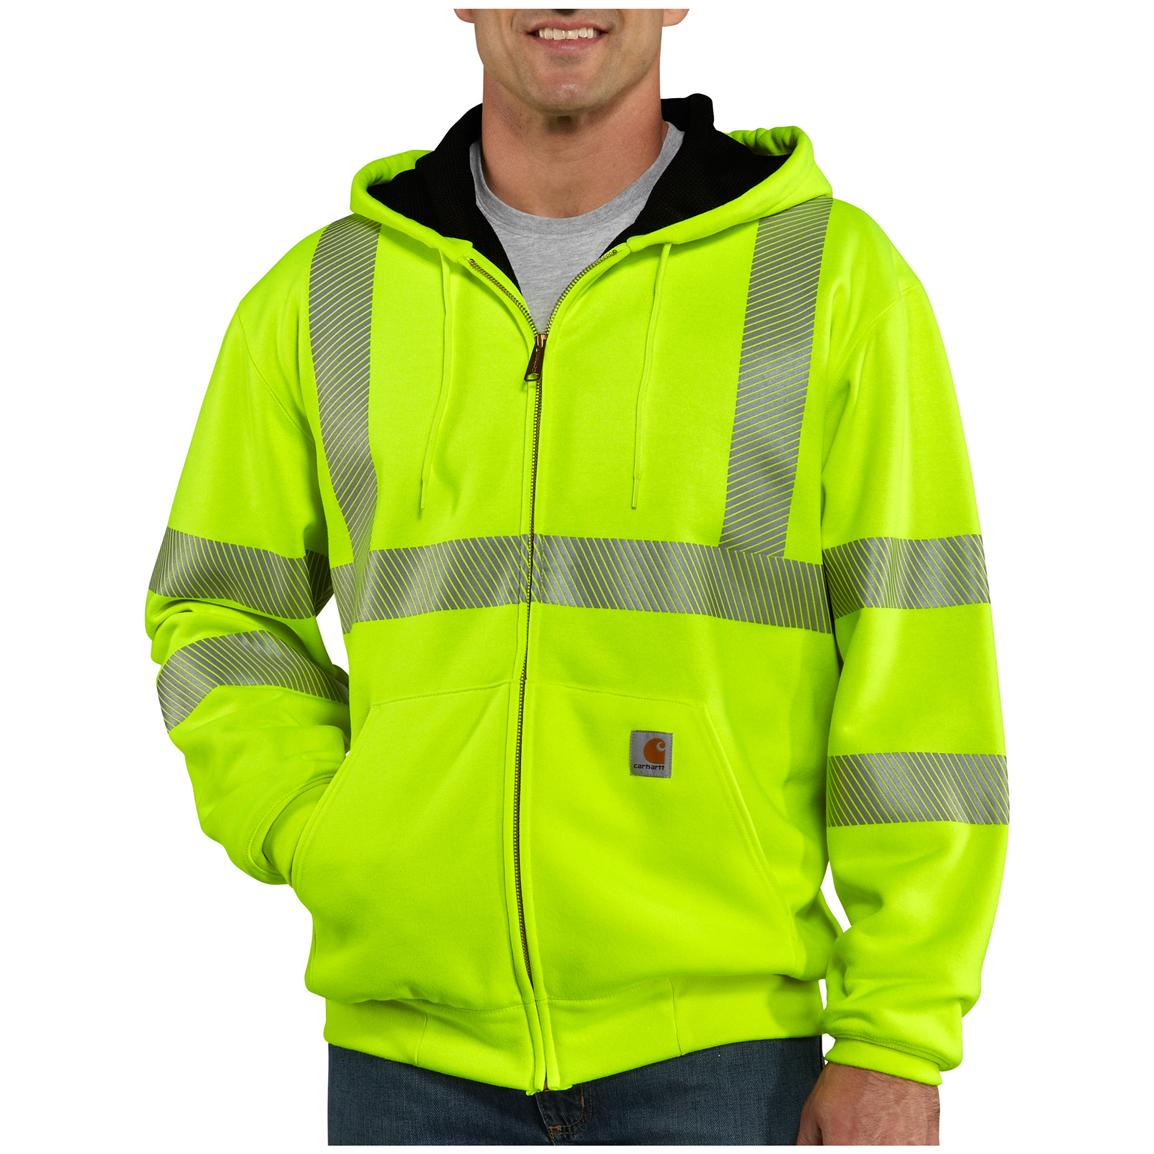 Men's Carhartt® Class 3 High-visibility Thermal Hooded Sweatshirt, Brite Lime